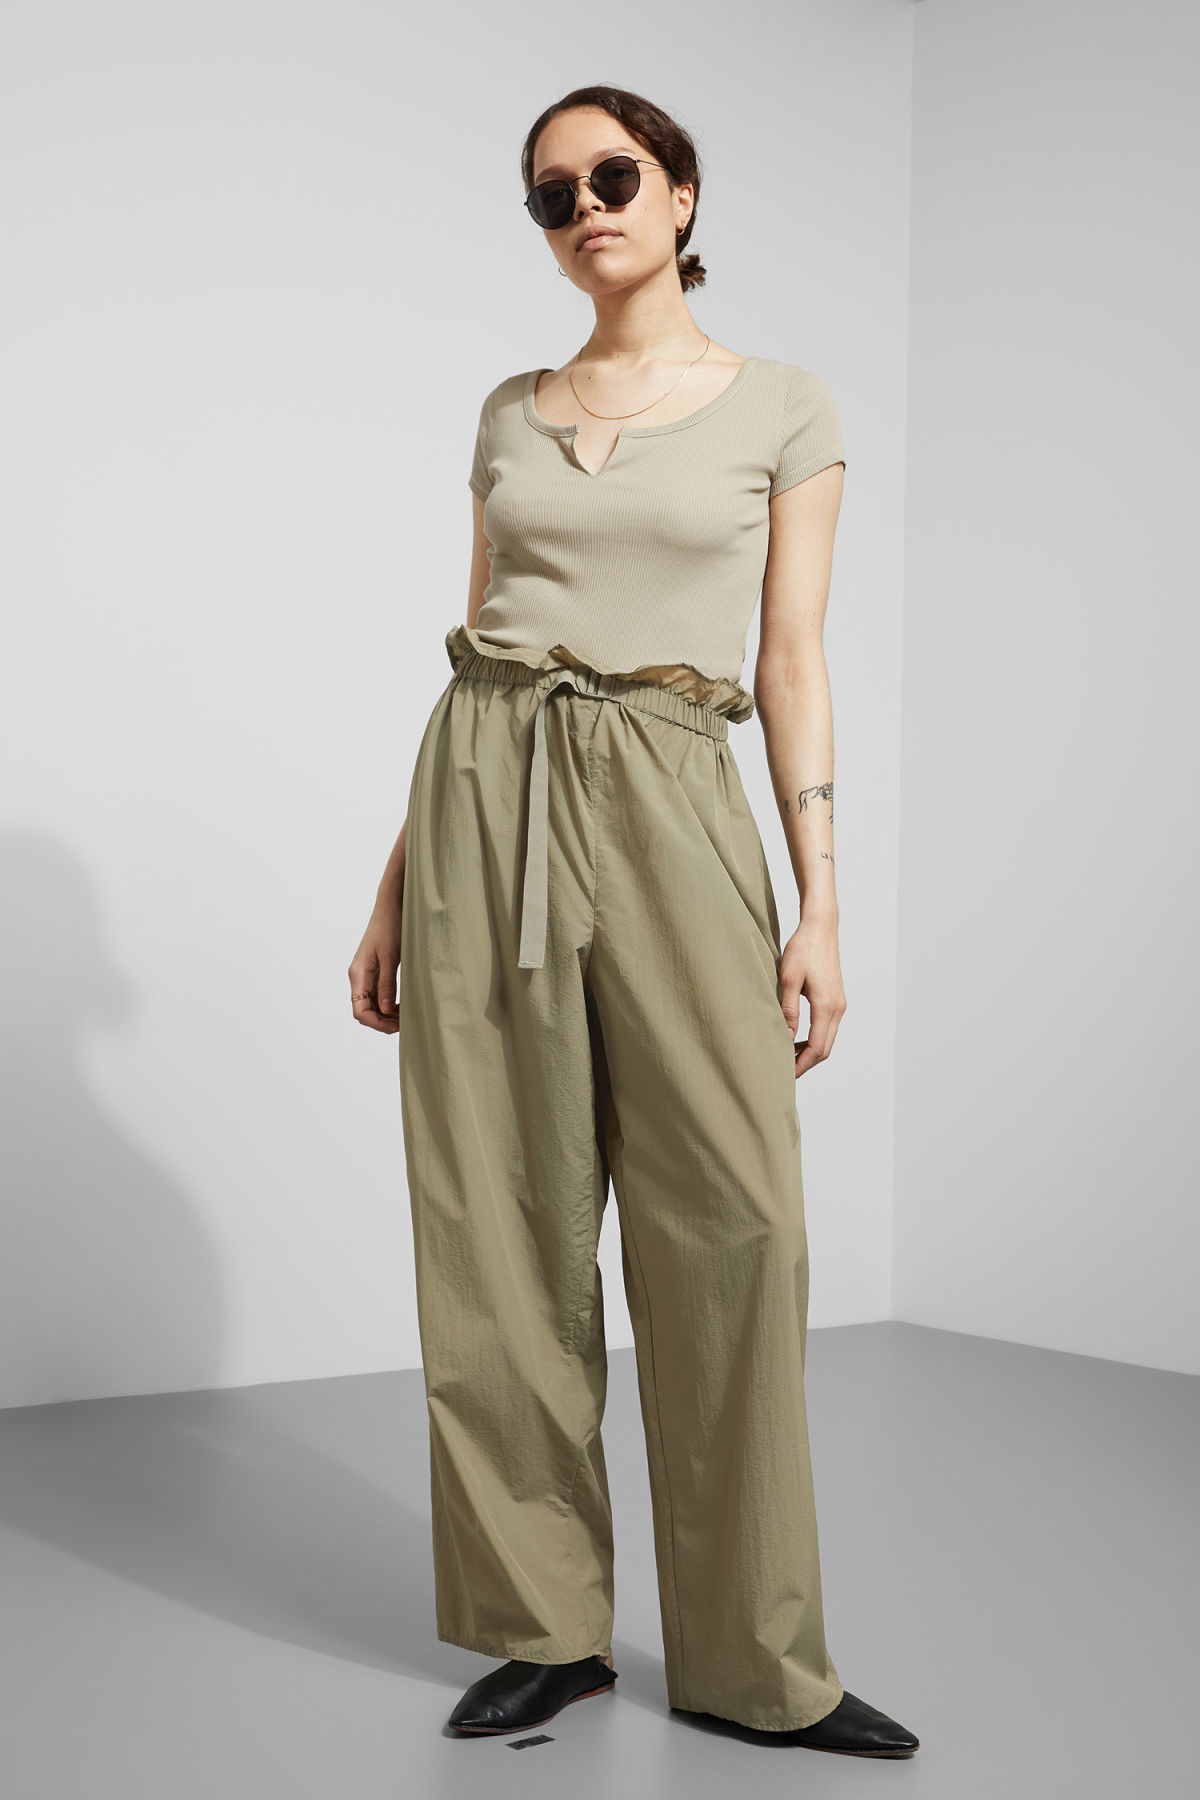 Weekday Symphony Trousers - Green Pas Cher Pour Pas Cher Prix Pas Cher En Ligne Prix Très Pas Cher XDhF9fqMq